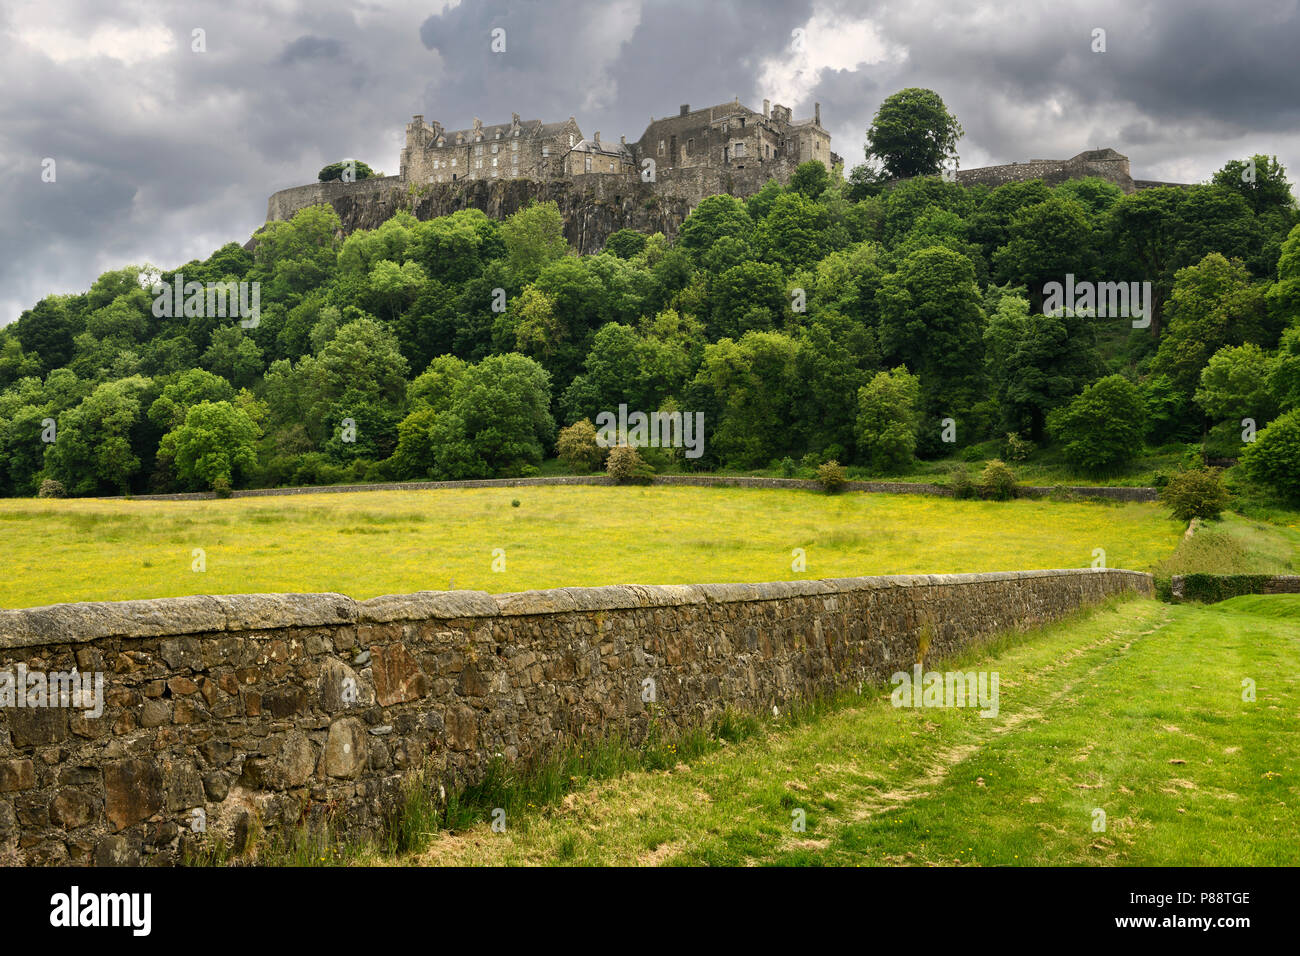 Stirling Castle on the cliff at Castle Hill in Stirling Scotland with stone wall of sheep pasture with dark clouds - Stock Image